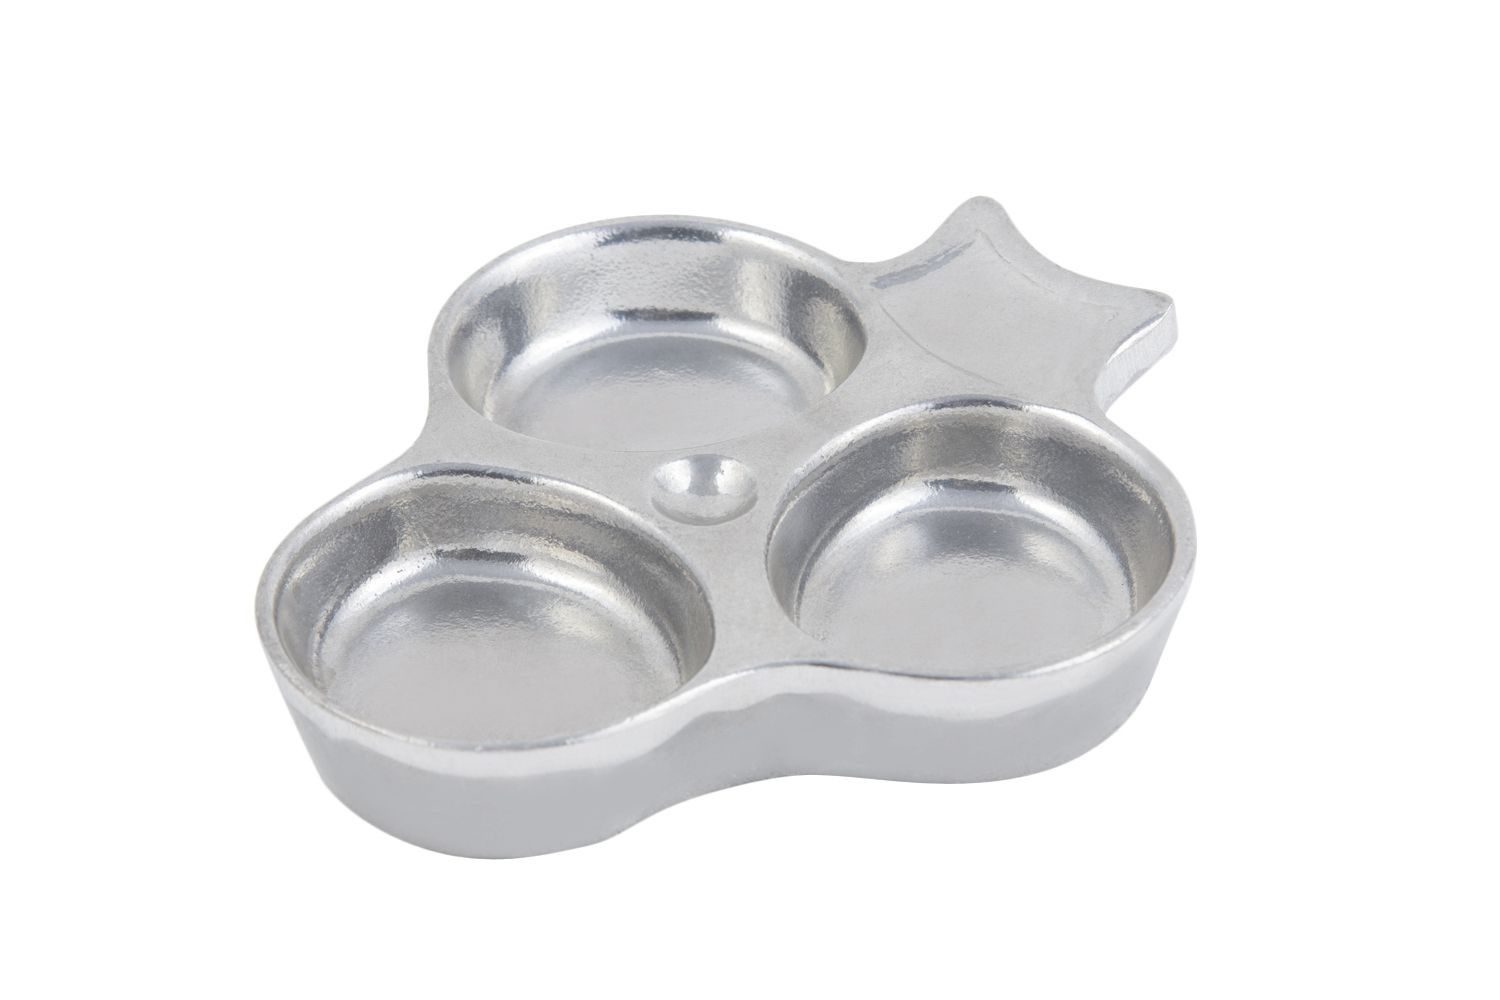 "Bon Chef 9064P 3-Compartment Sauce Dish, Pewter Glo 5 1/2"" x 5 3/4"", Set of 6"